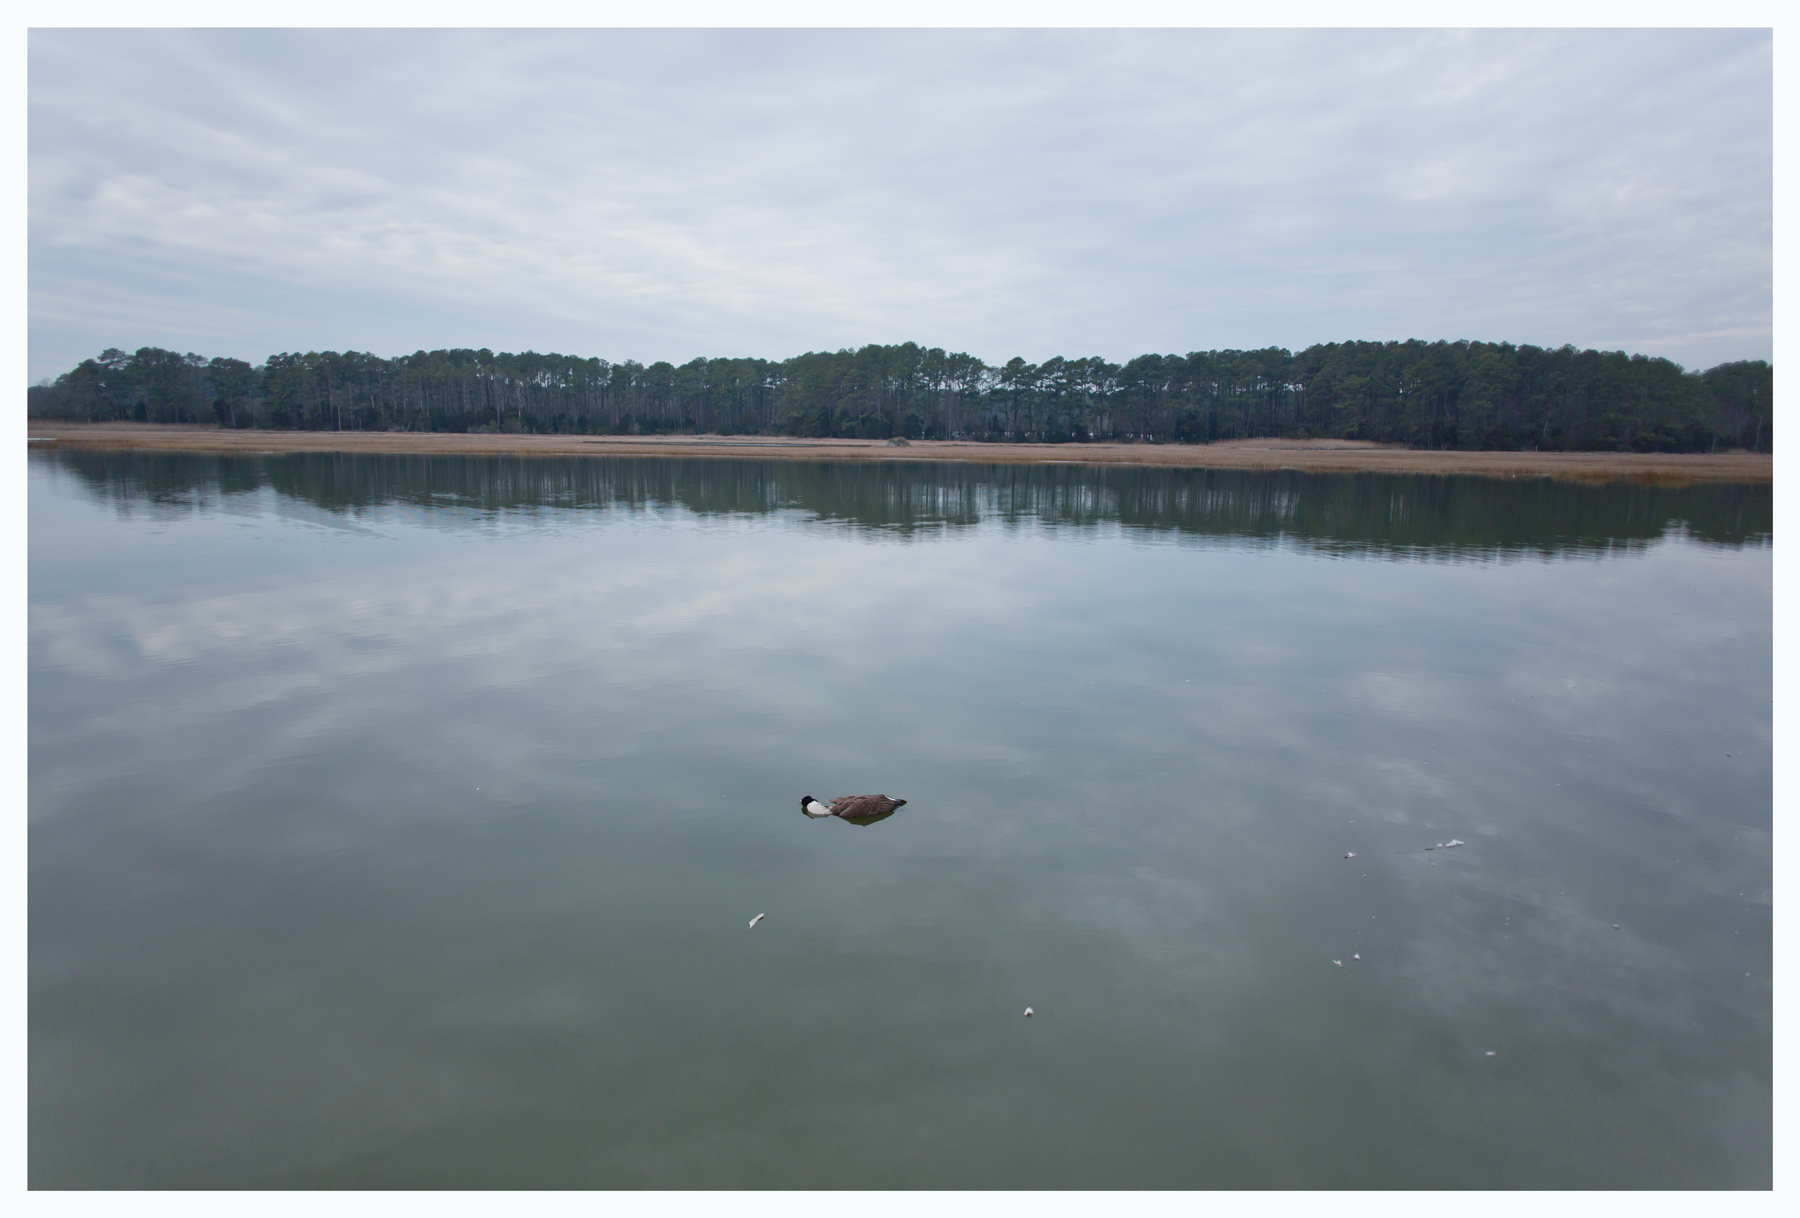 Dead Canada; Heron Hope Estuary; Locustville, VA; January 2015